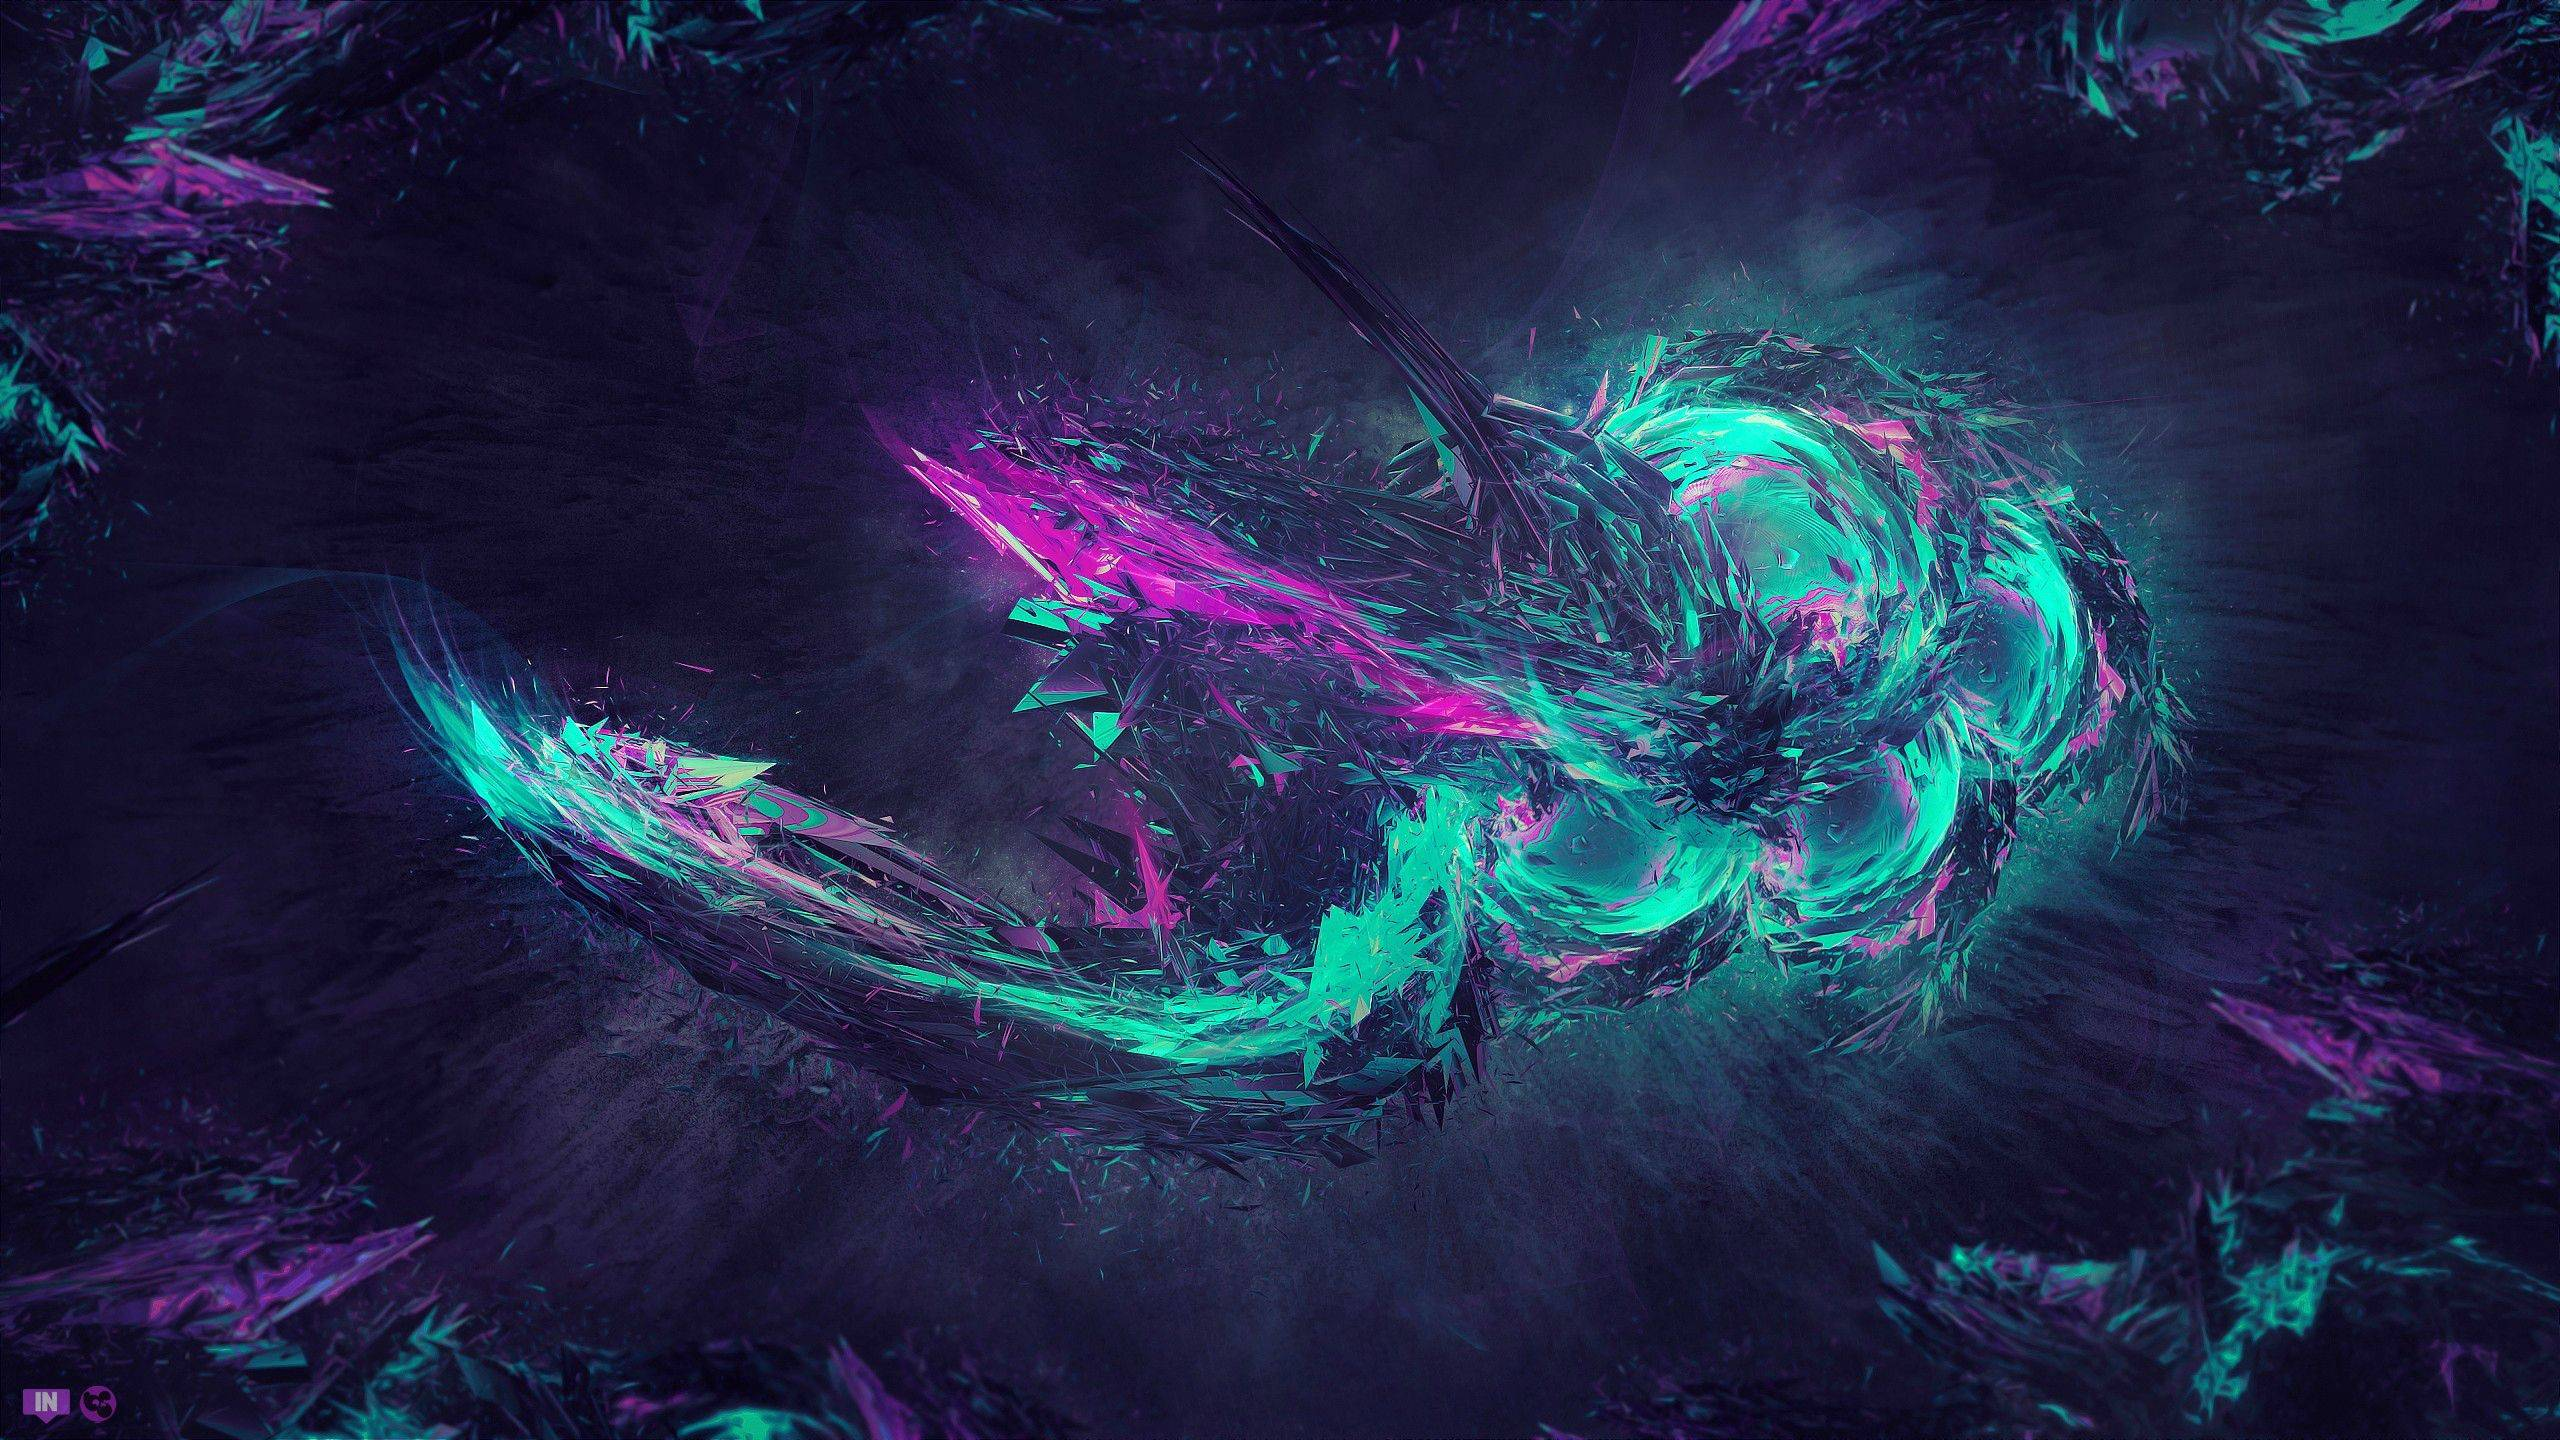 Purple Gaming Wallpapers   Top Purple Gaming Backgrounds 2560x1440